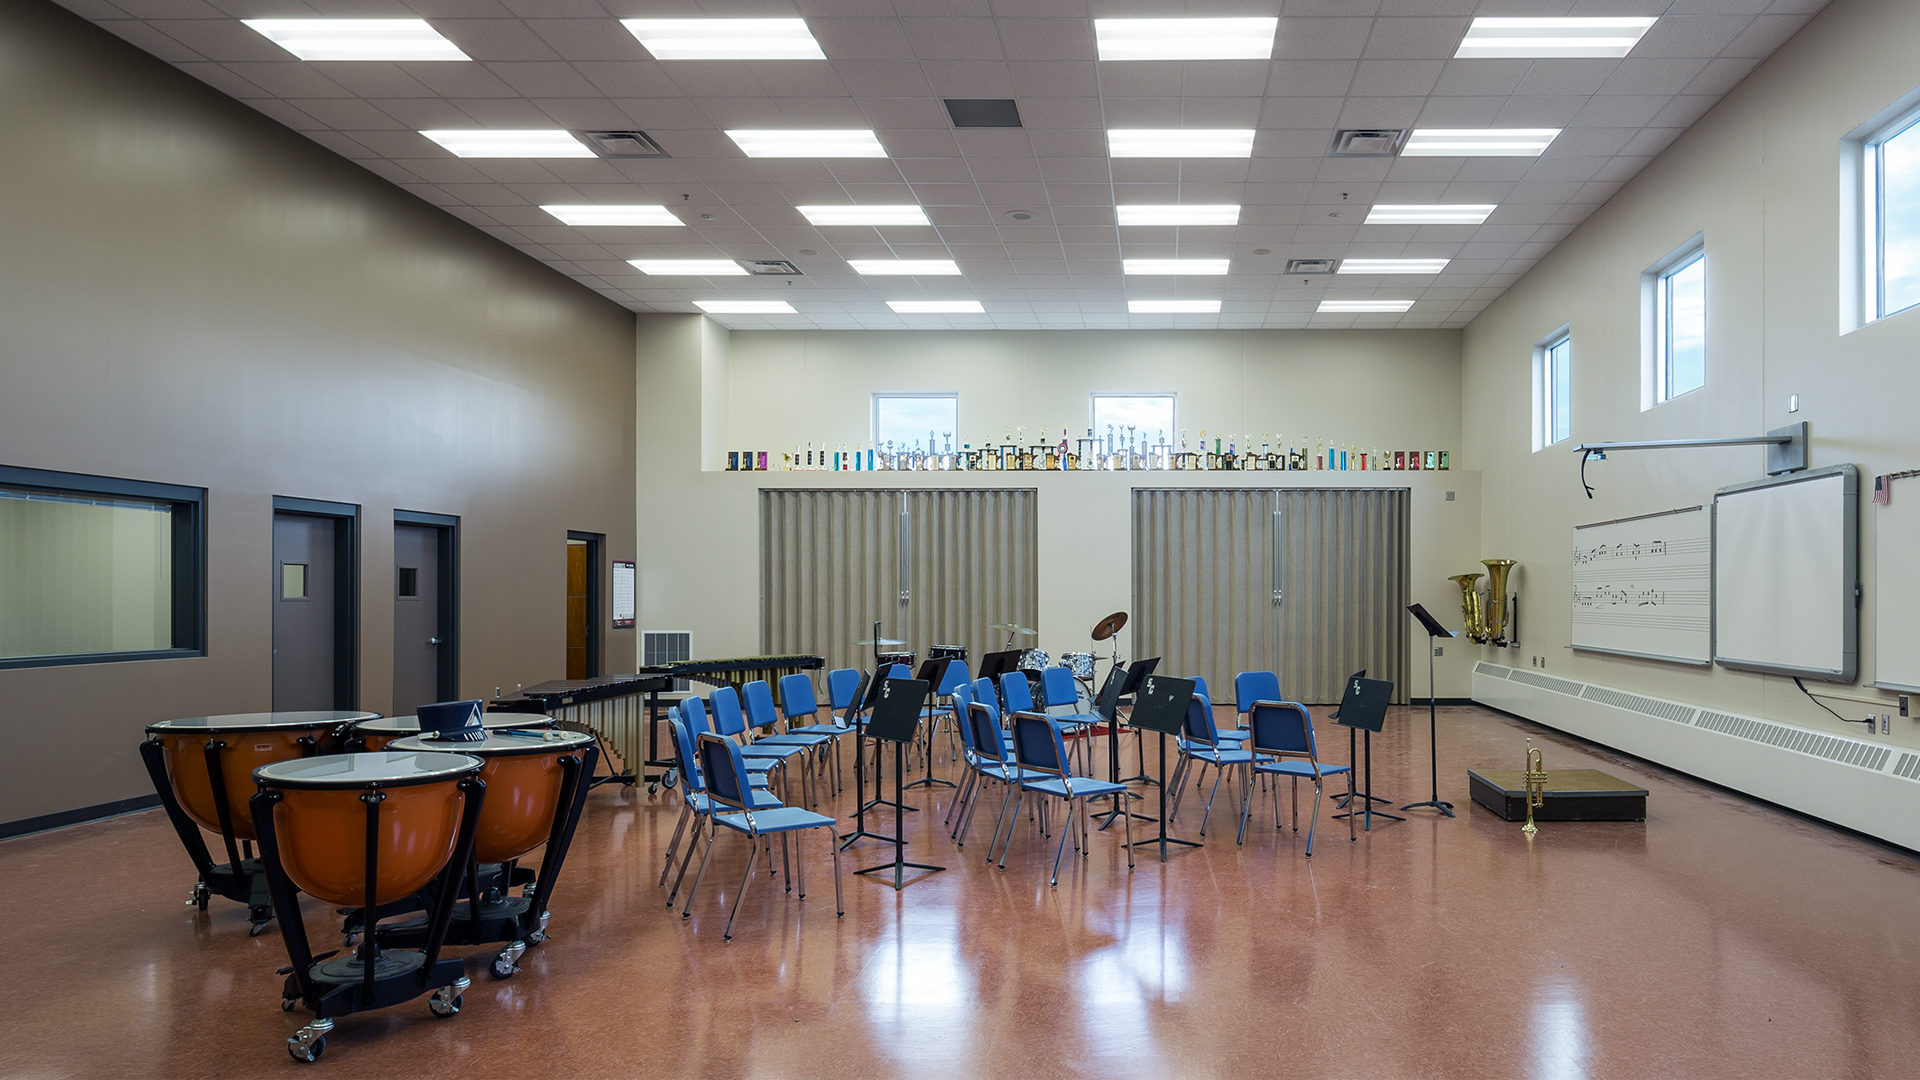 United South Central Schools Wells MN Education Vaulted Ceiling Band Room